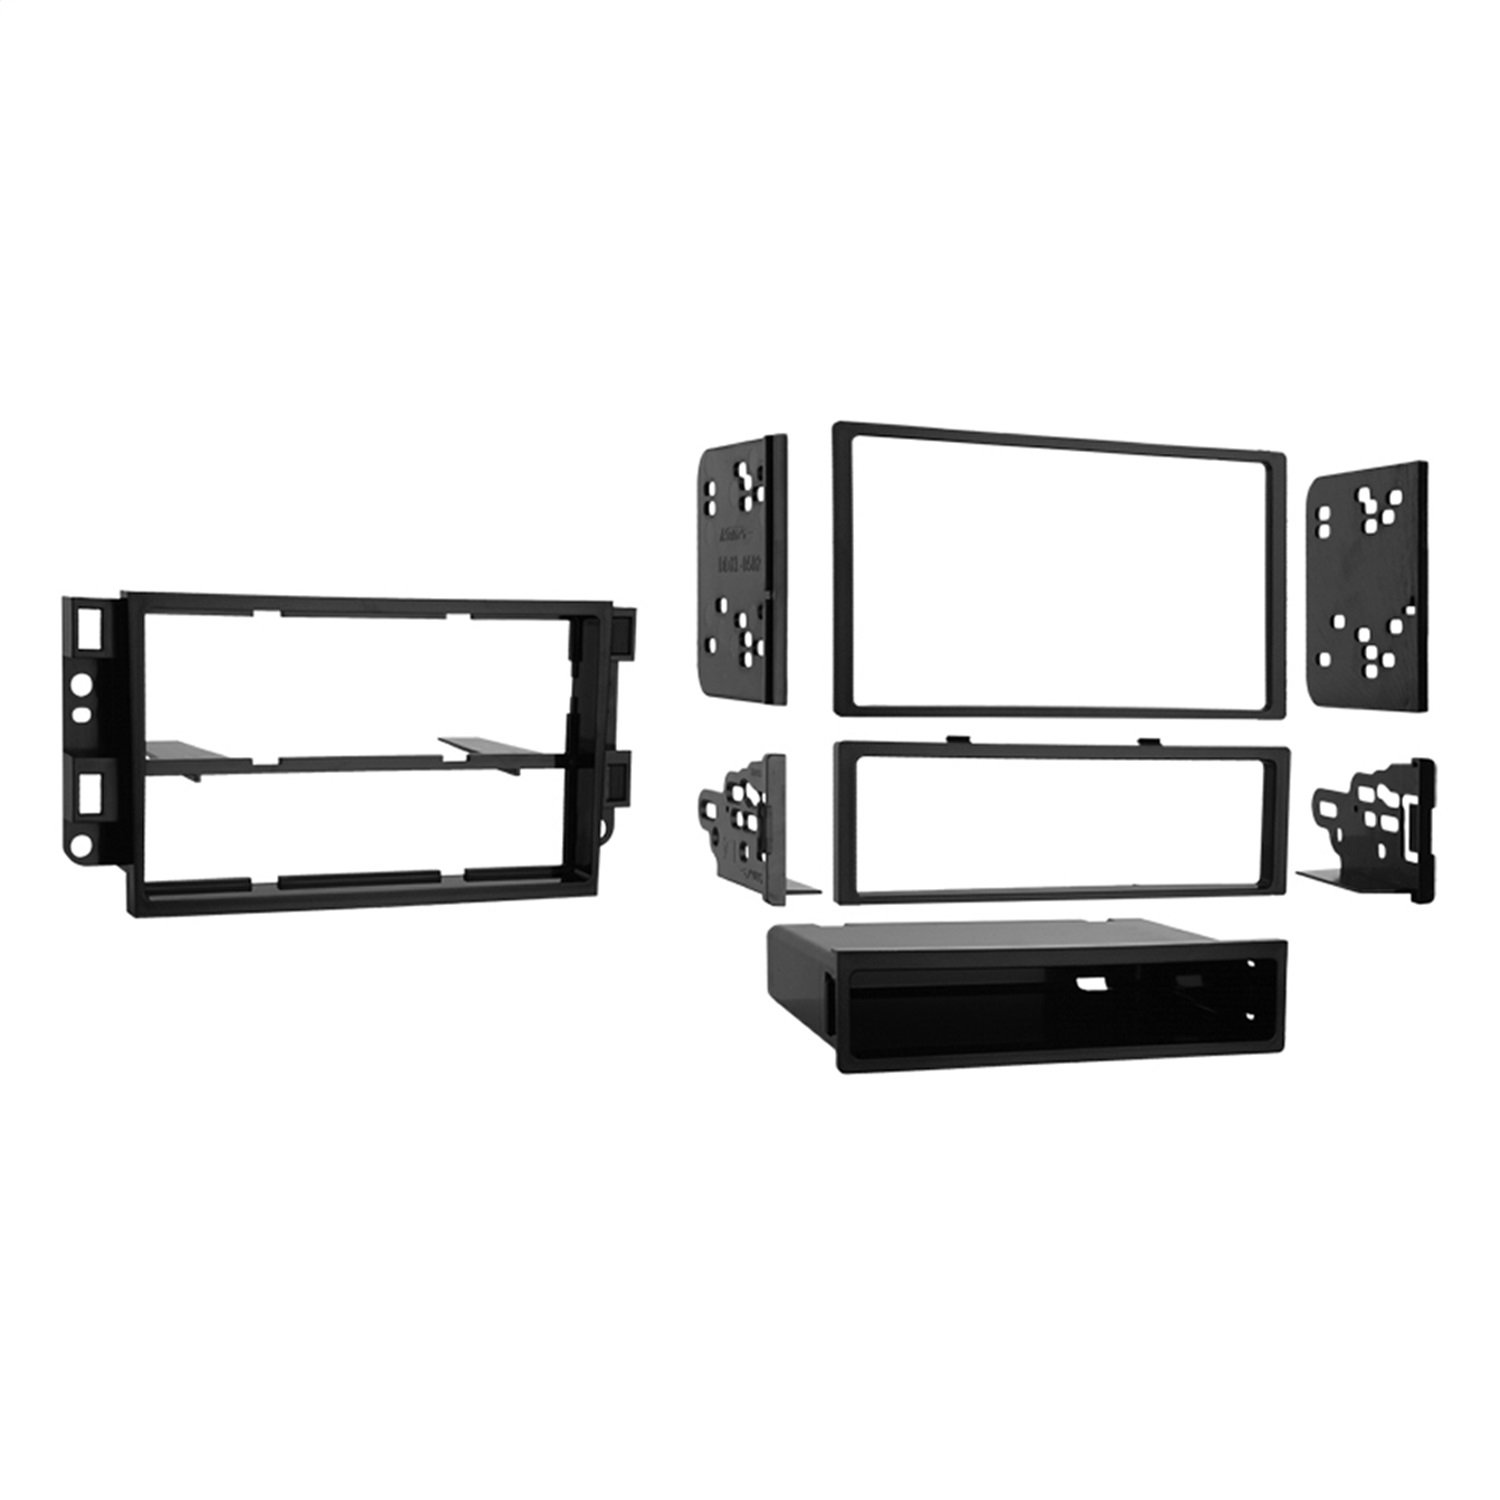 Metra 99-3306 Double DIN or Single DIN Installation Dash Kit for 2007-up Chevrolet Aveo and Pontiac G3 (Black) Metra Electronics Corporation